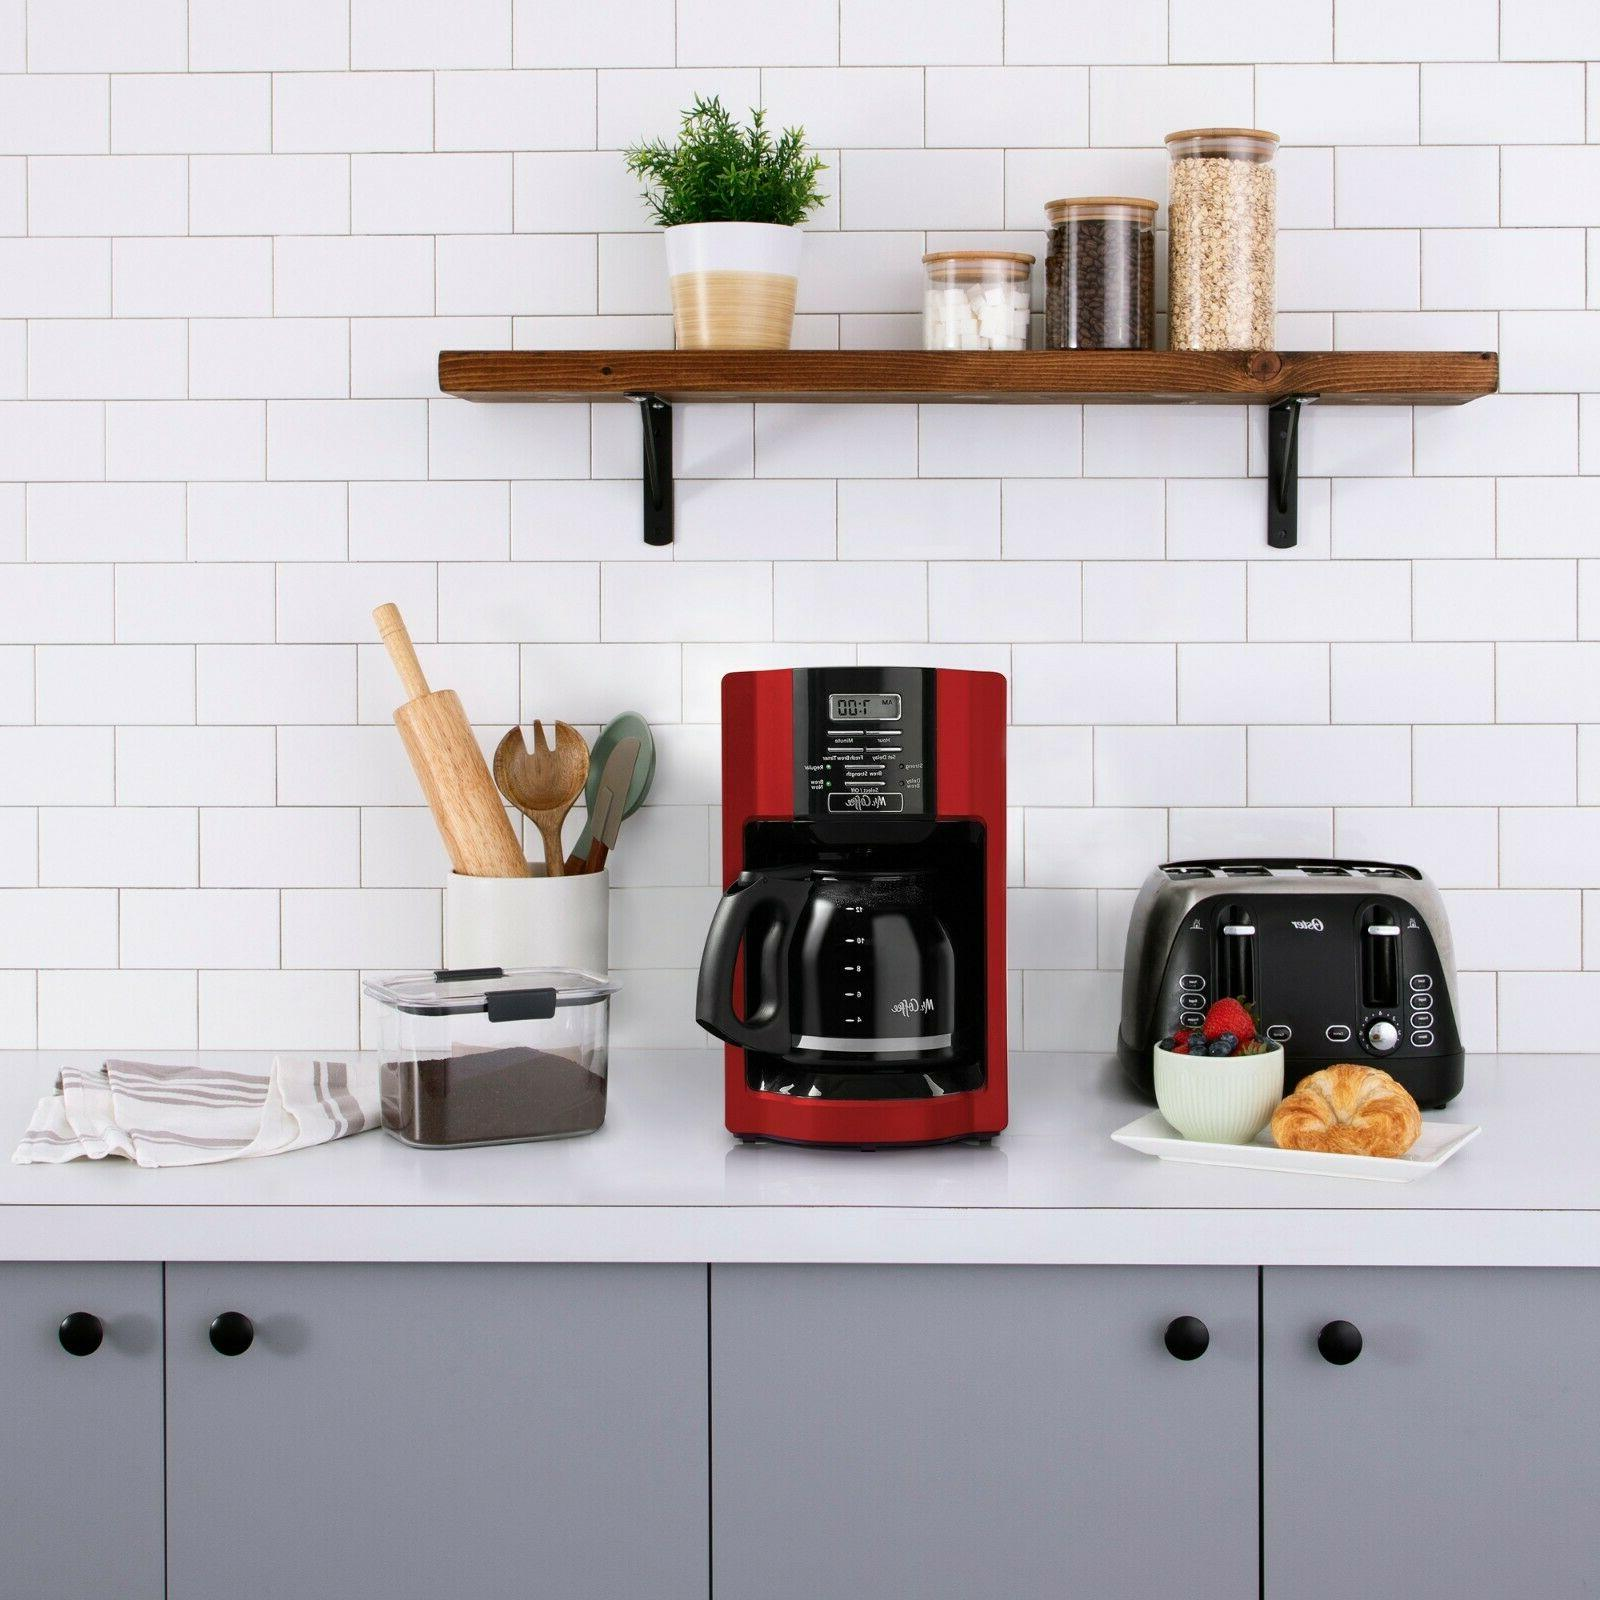 Mr. Coffee 2082689 12 Cup Automatic Drip Coffee Maker - Red